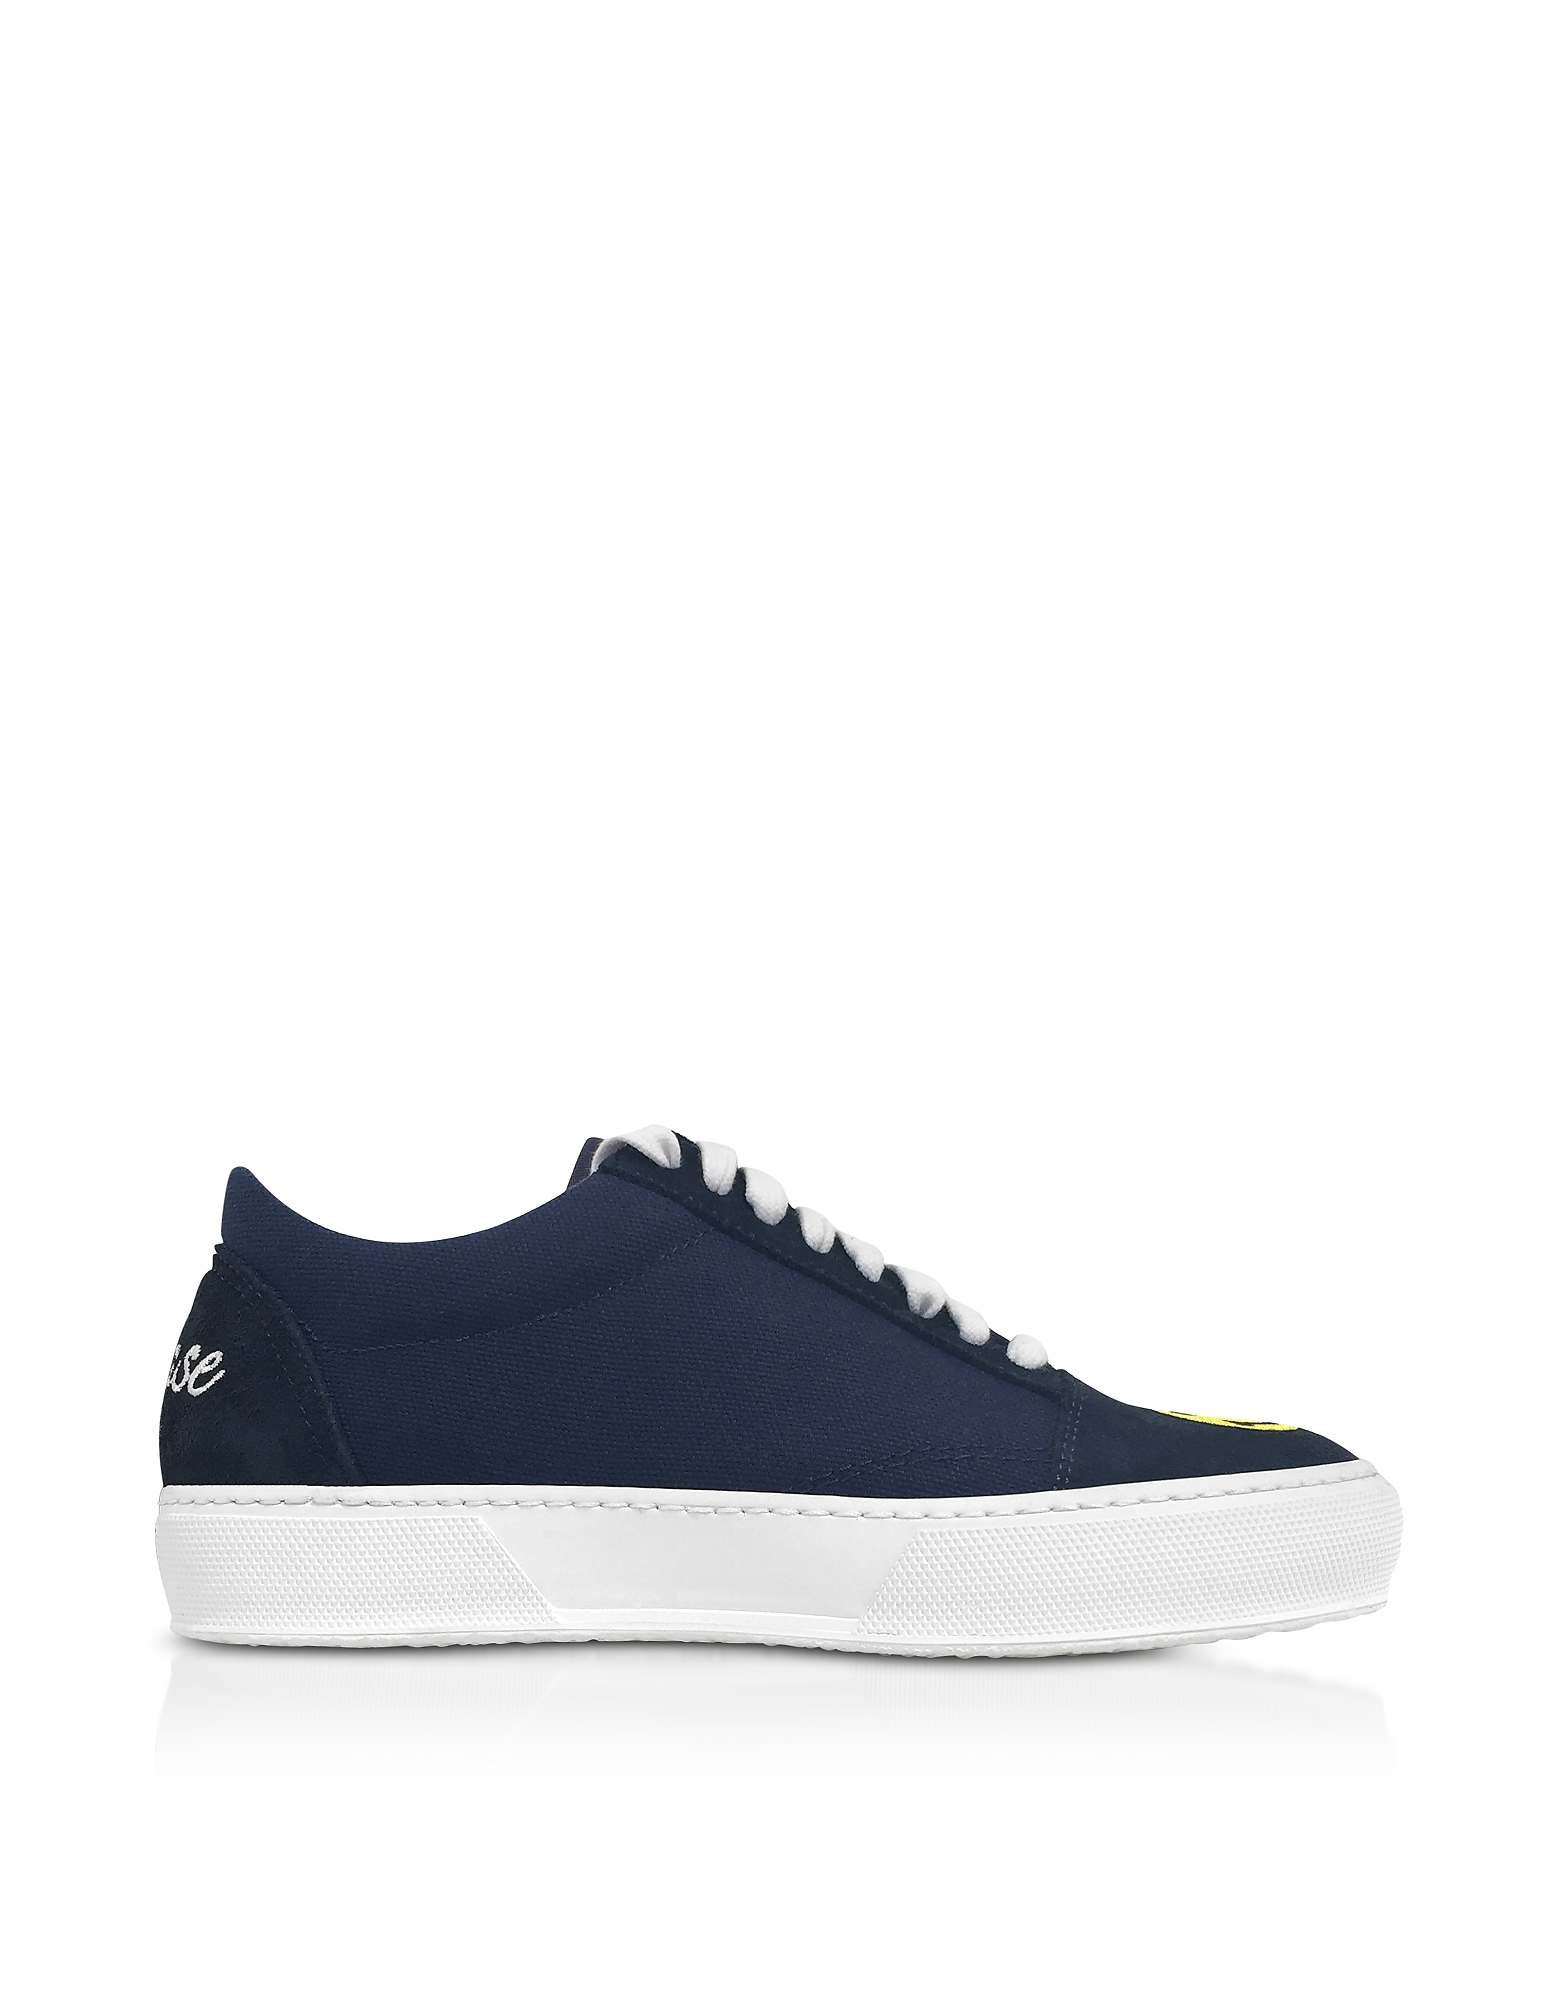 Joshua Sanders Shoes, Blue Cotton and Leather Smile Embroidery Lace Up Sneakers